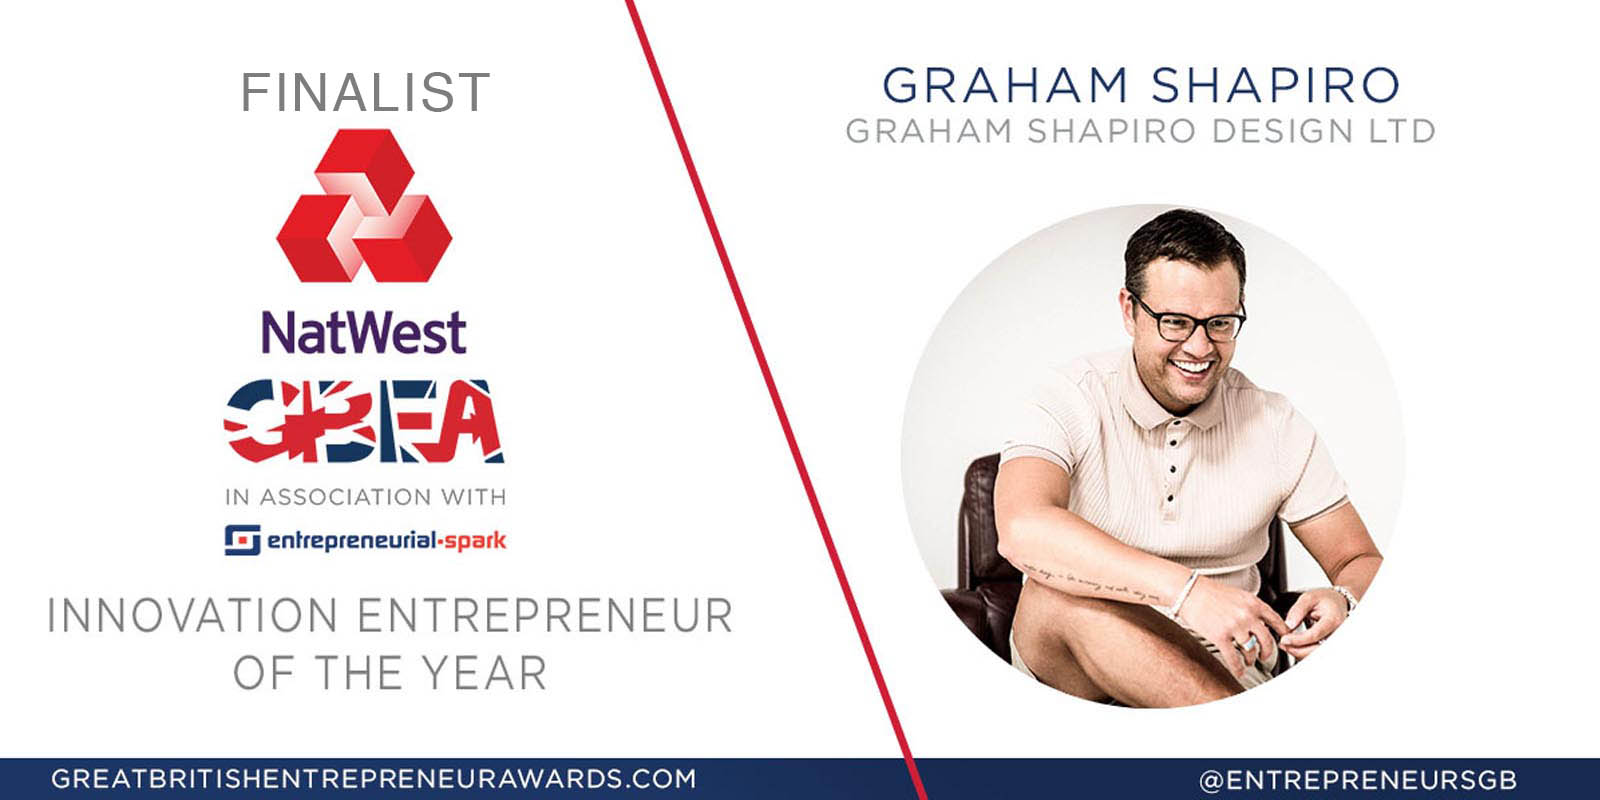 Graham Shapiro finalist for the 2017 NatWest Great British Entrepreneur Awards